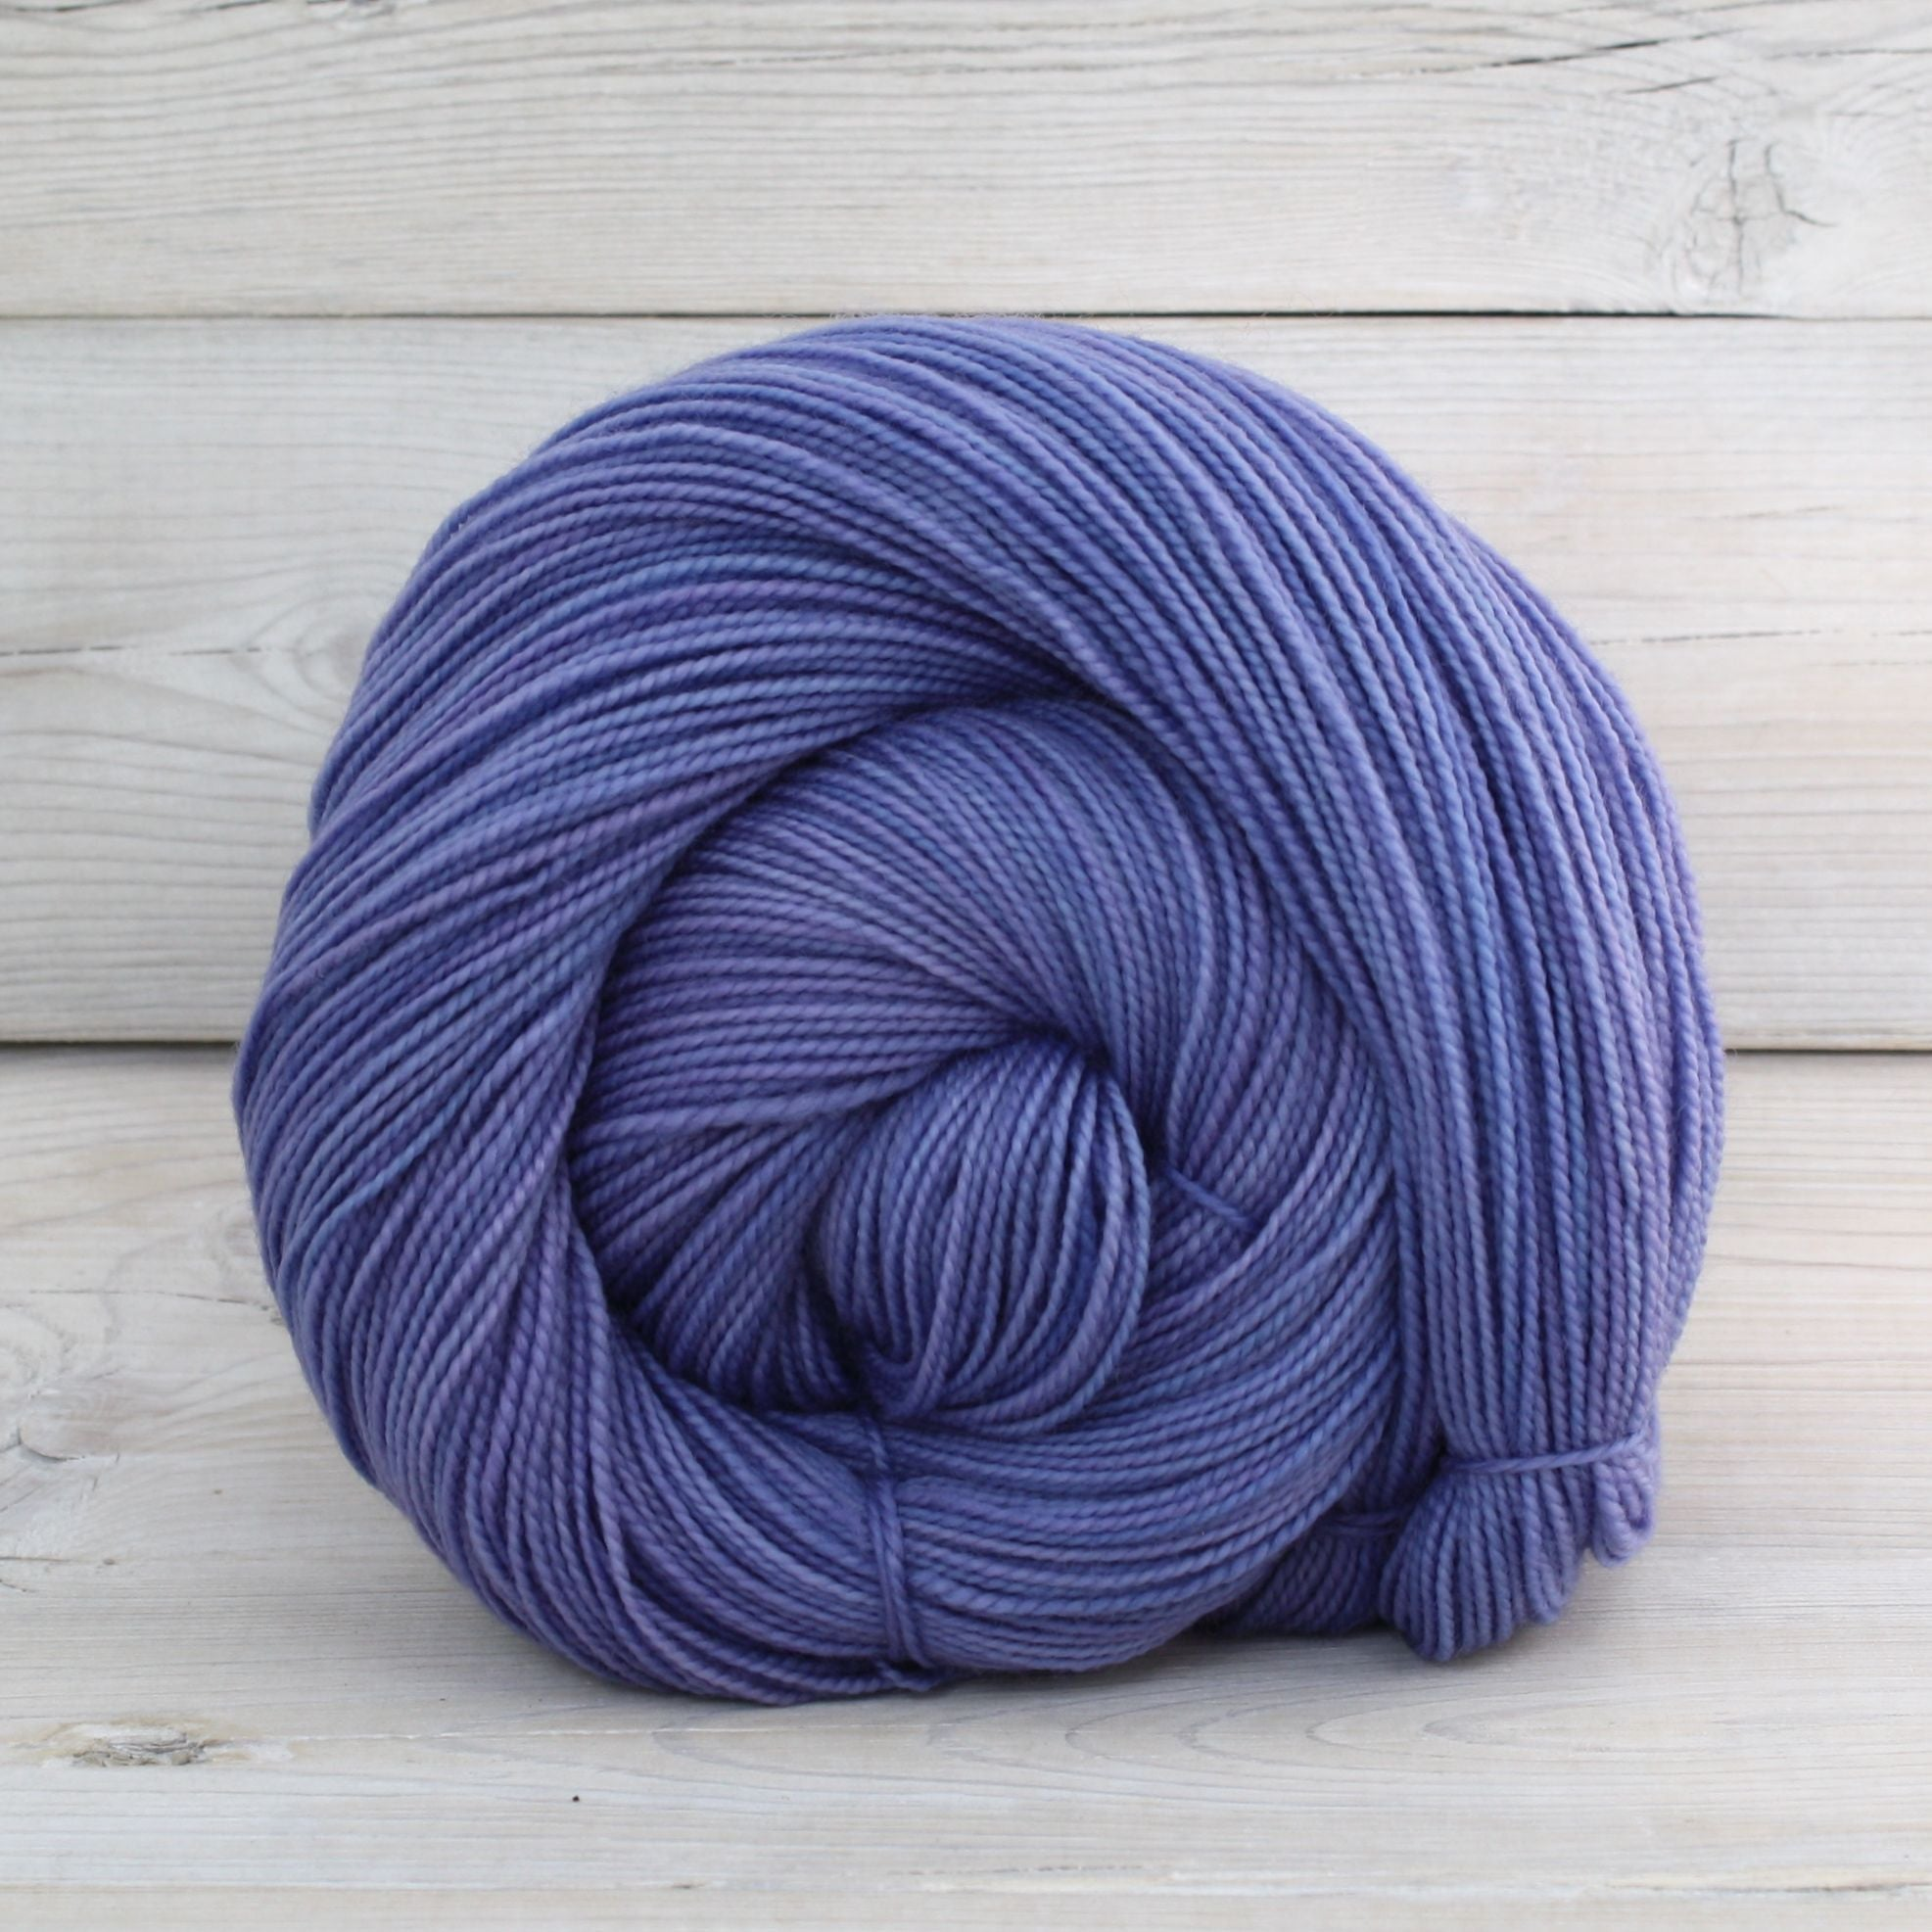 Luna Grey Fiber Arts Celeste Yarn | Colorway: Columbine